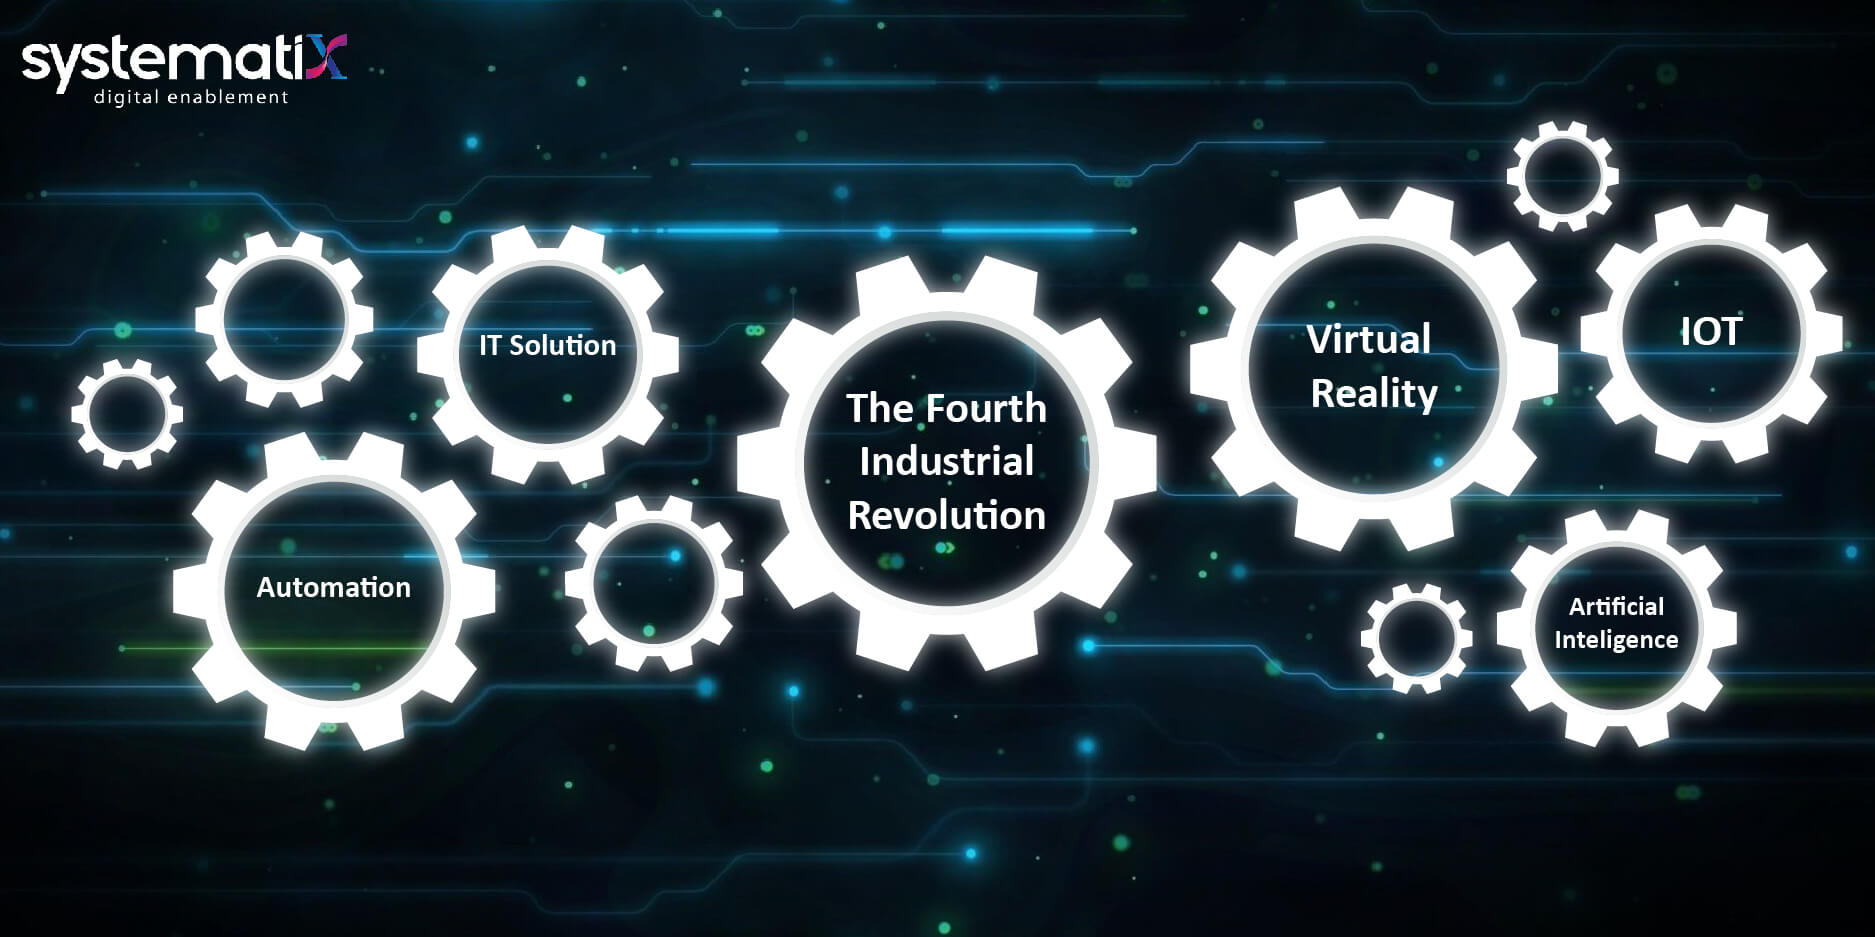 IOT: The Fourth Industrial Revolution in the Making